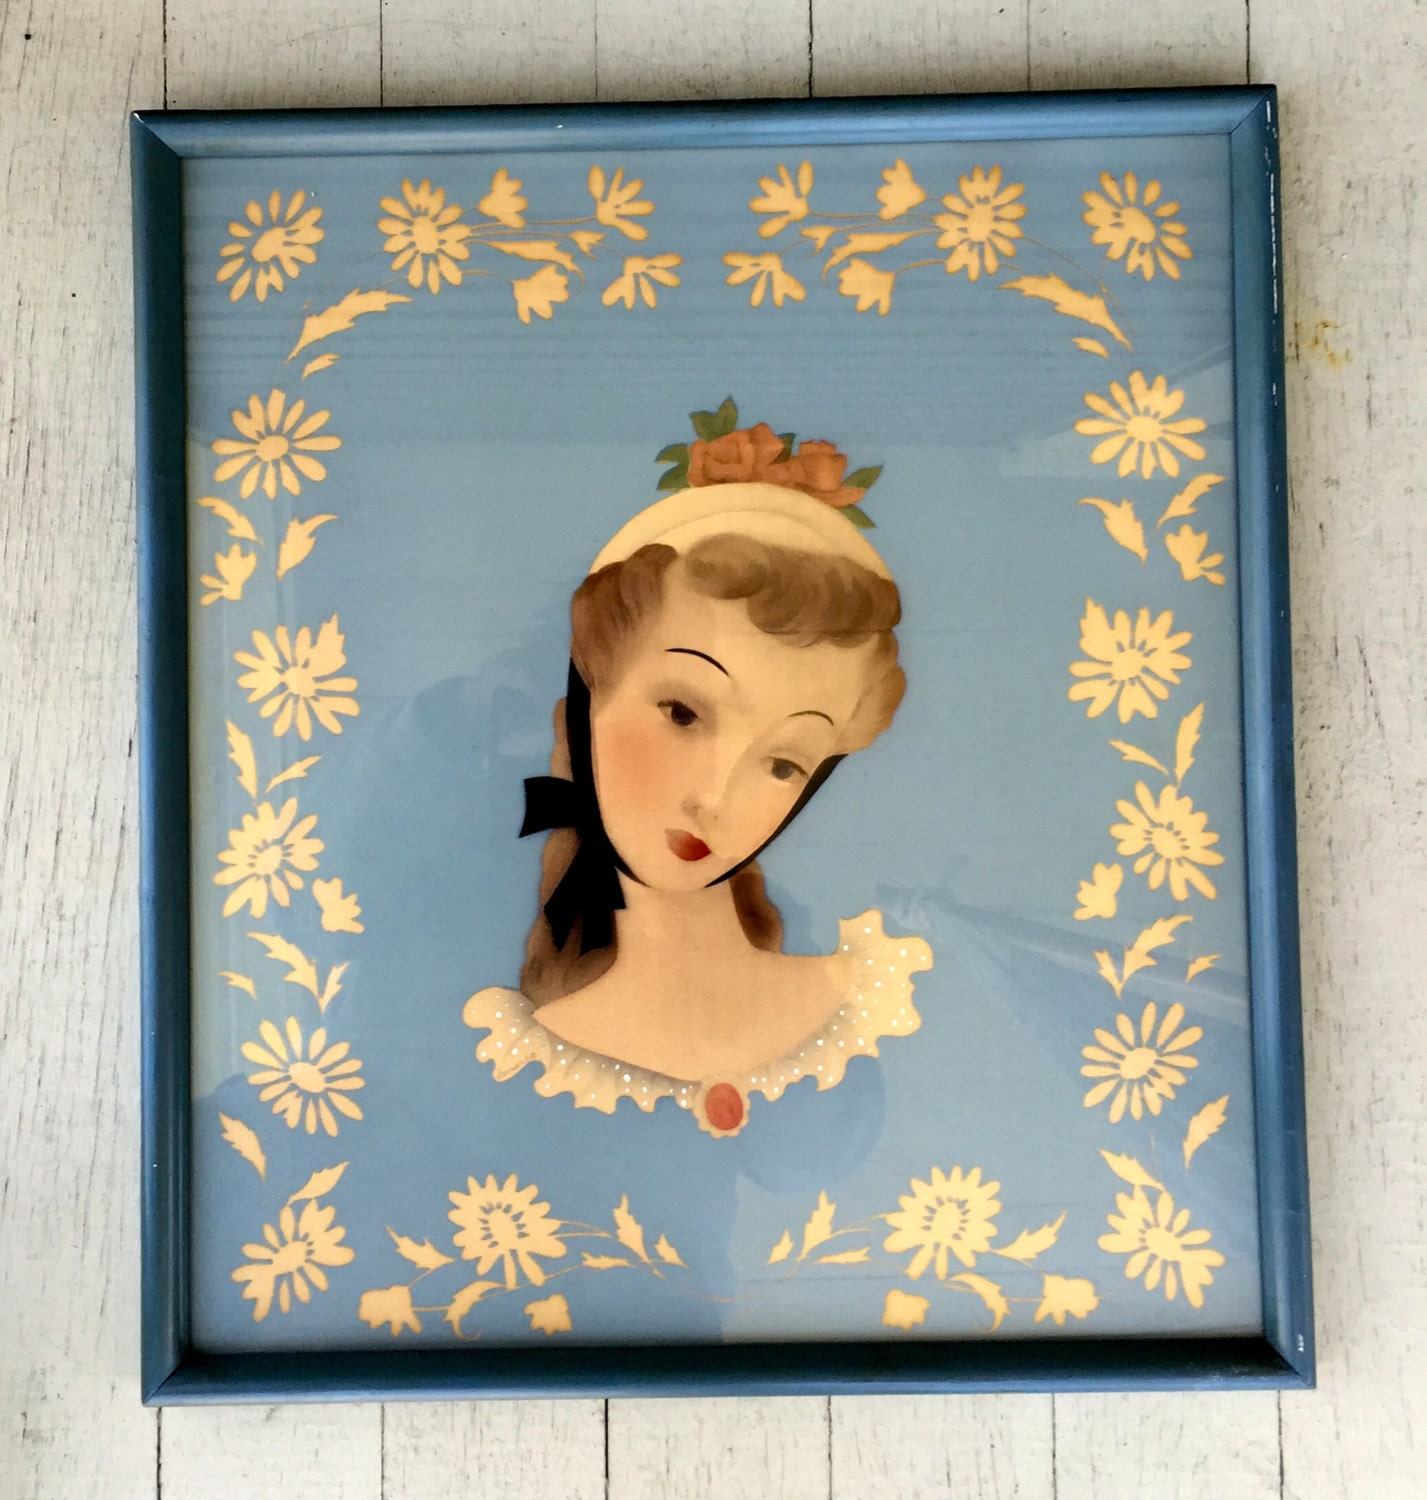 Blue Framed Picture Of Lady 1945 Bernard Picture Co Airbrush